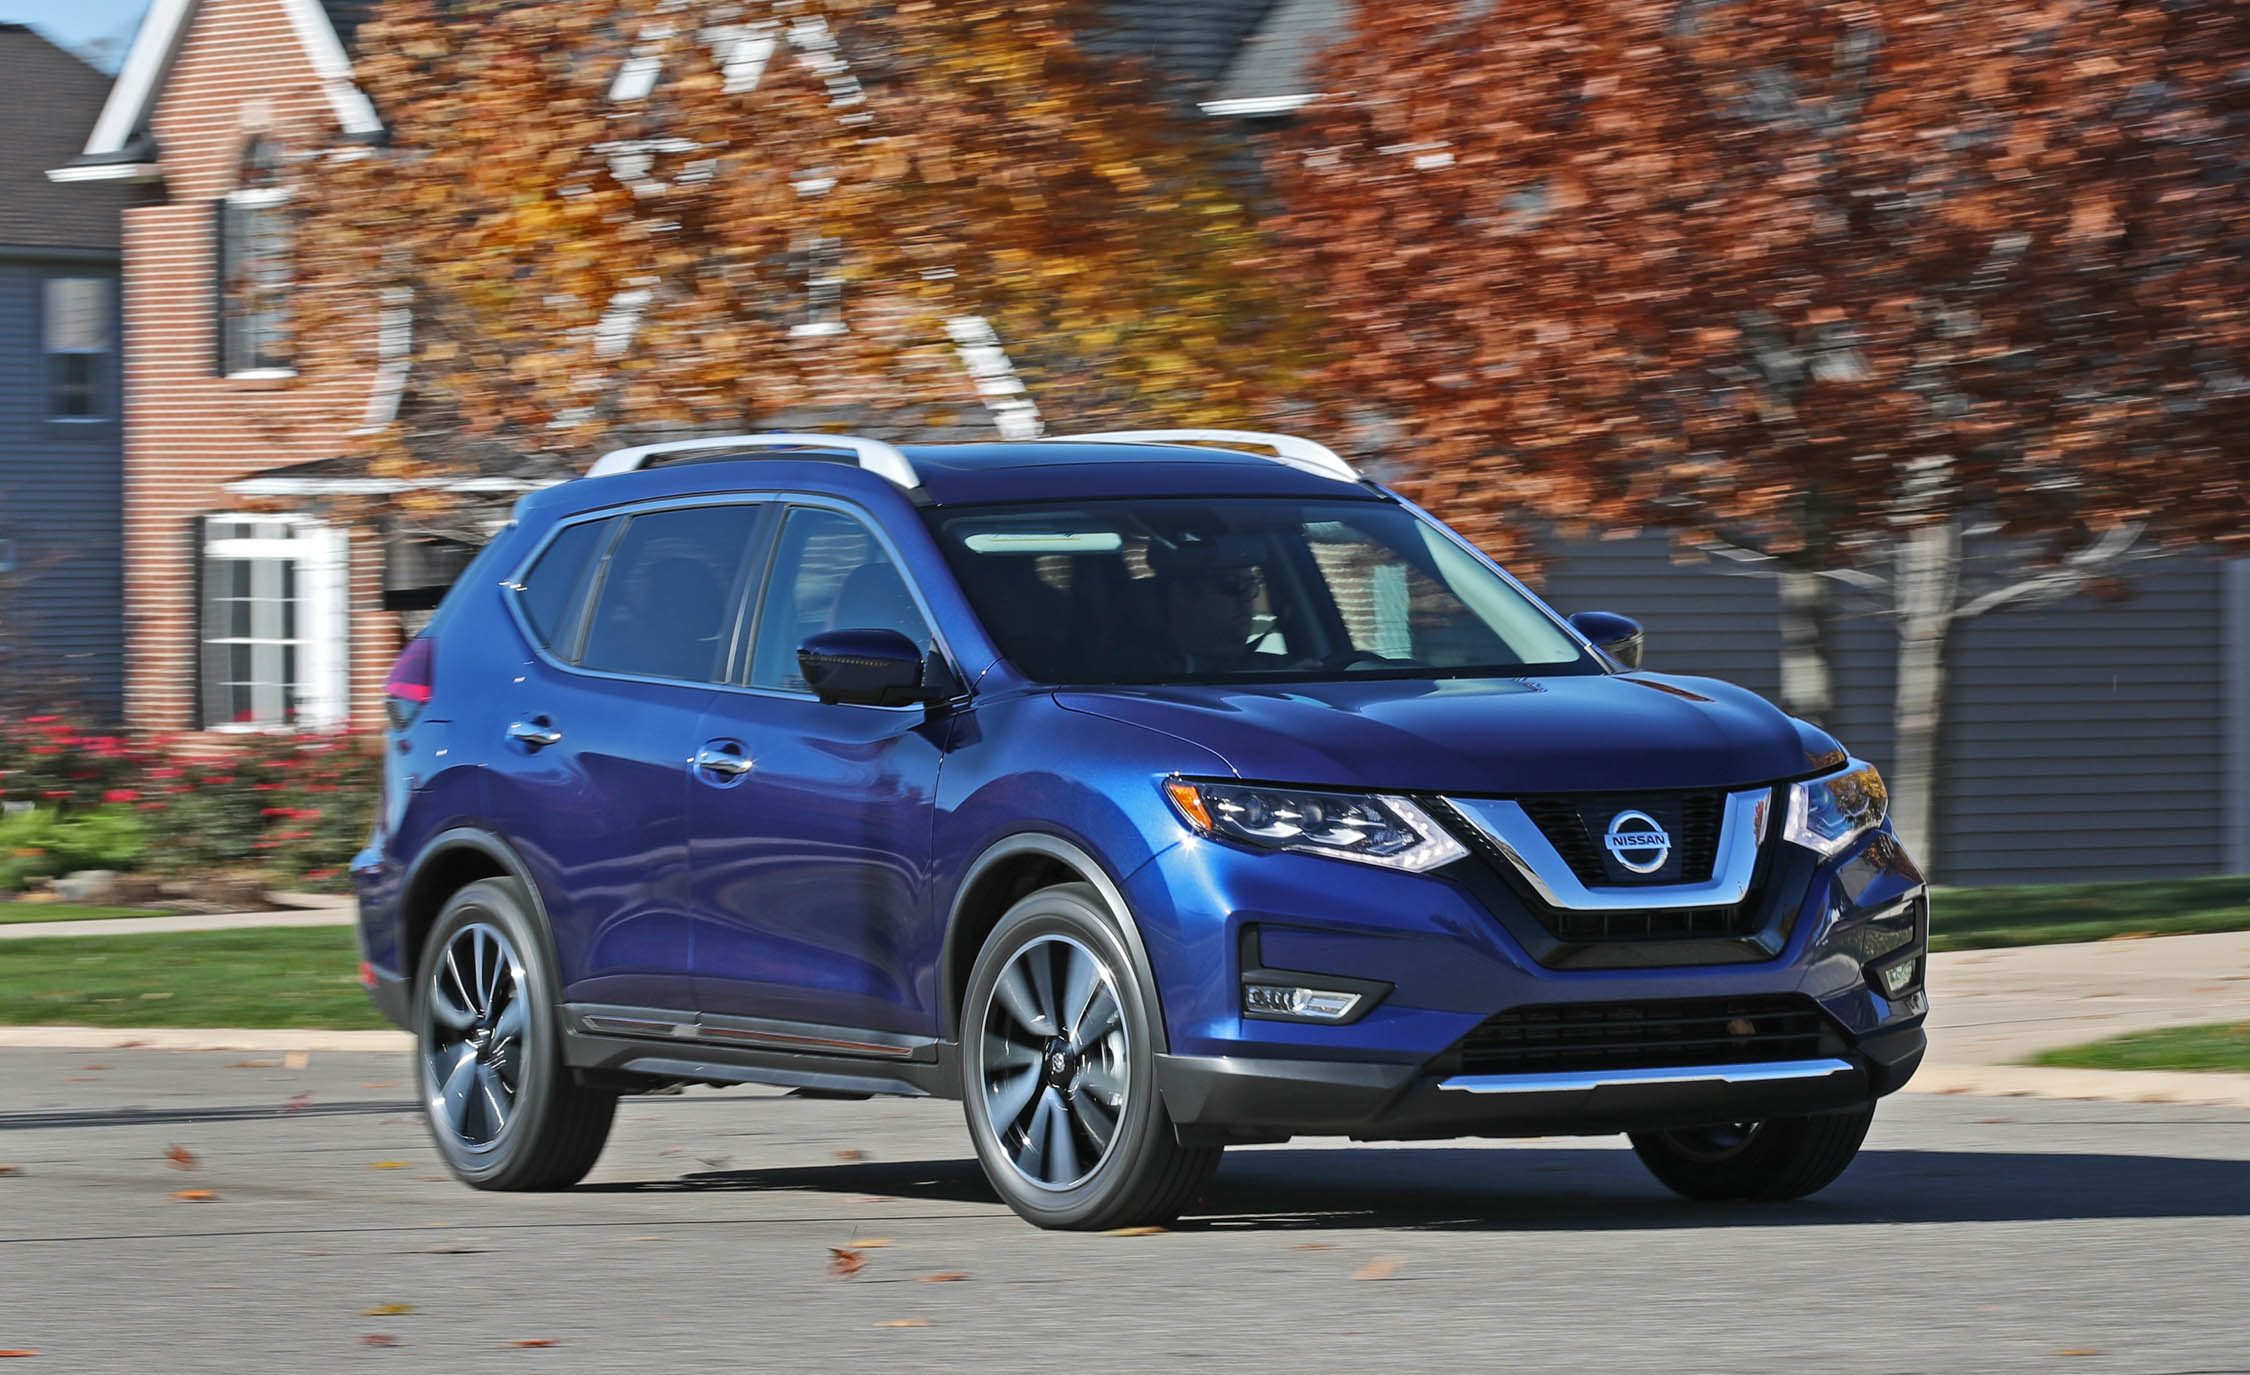 Nissan Rogue Cvt Transmission Upcomingcarshq Com